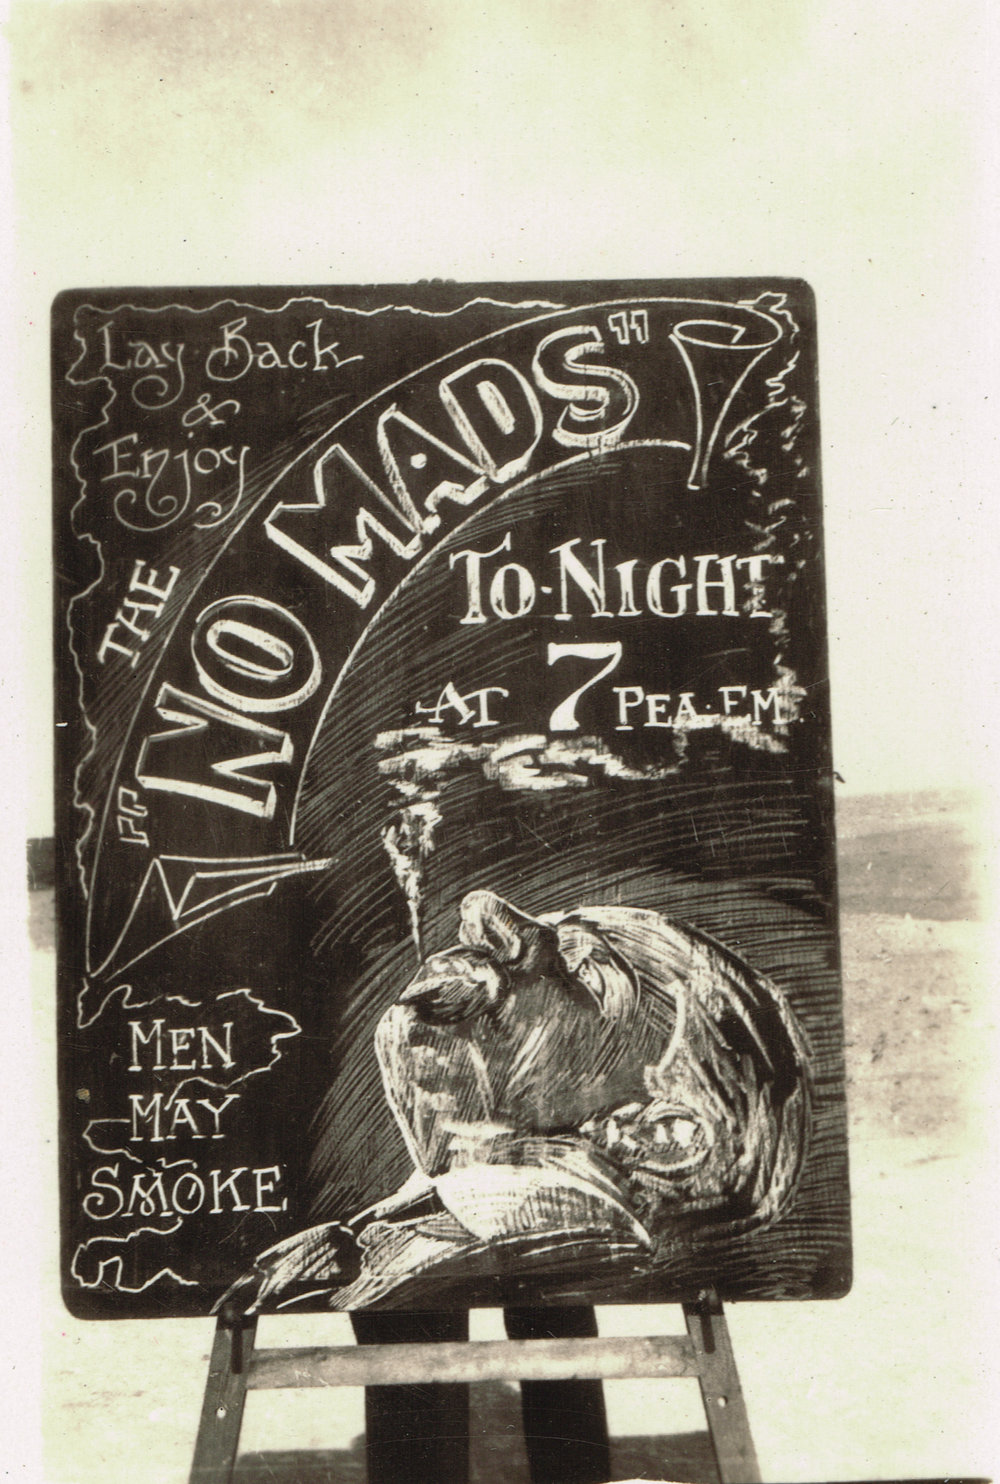 "Reg's chalkboard advertising The Nomads tonight, ""at 7 pea em"" at Port Said Rest Camp in early 1916 or December to April 1919."